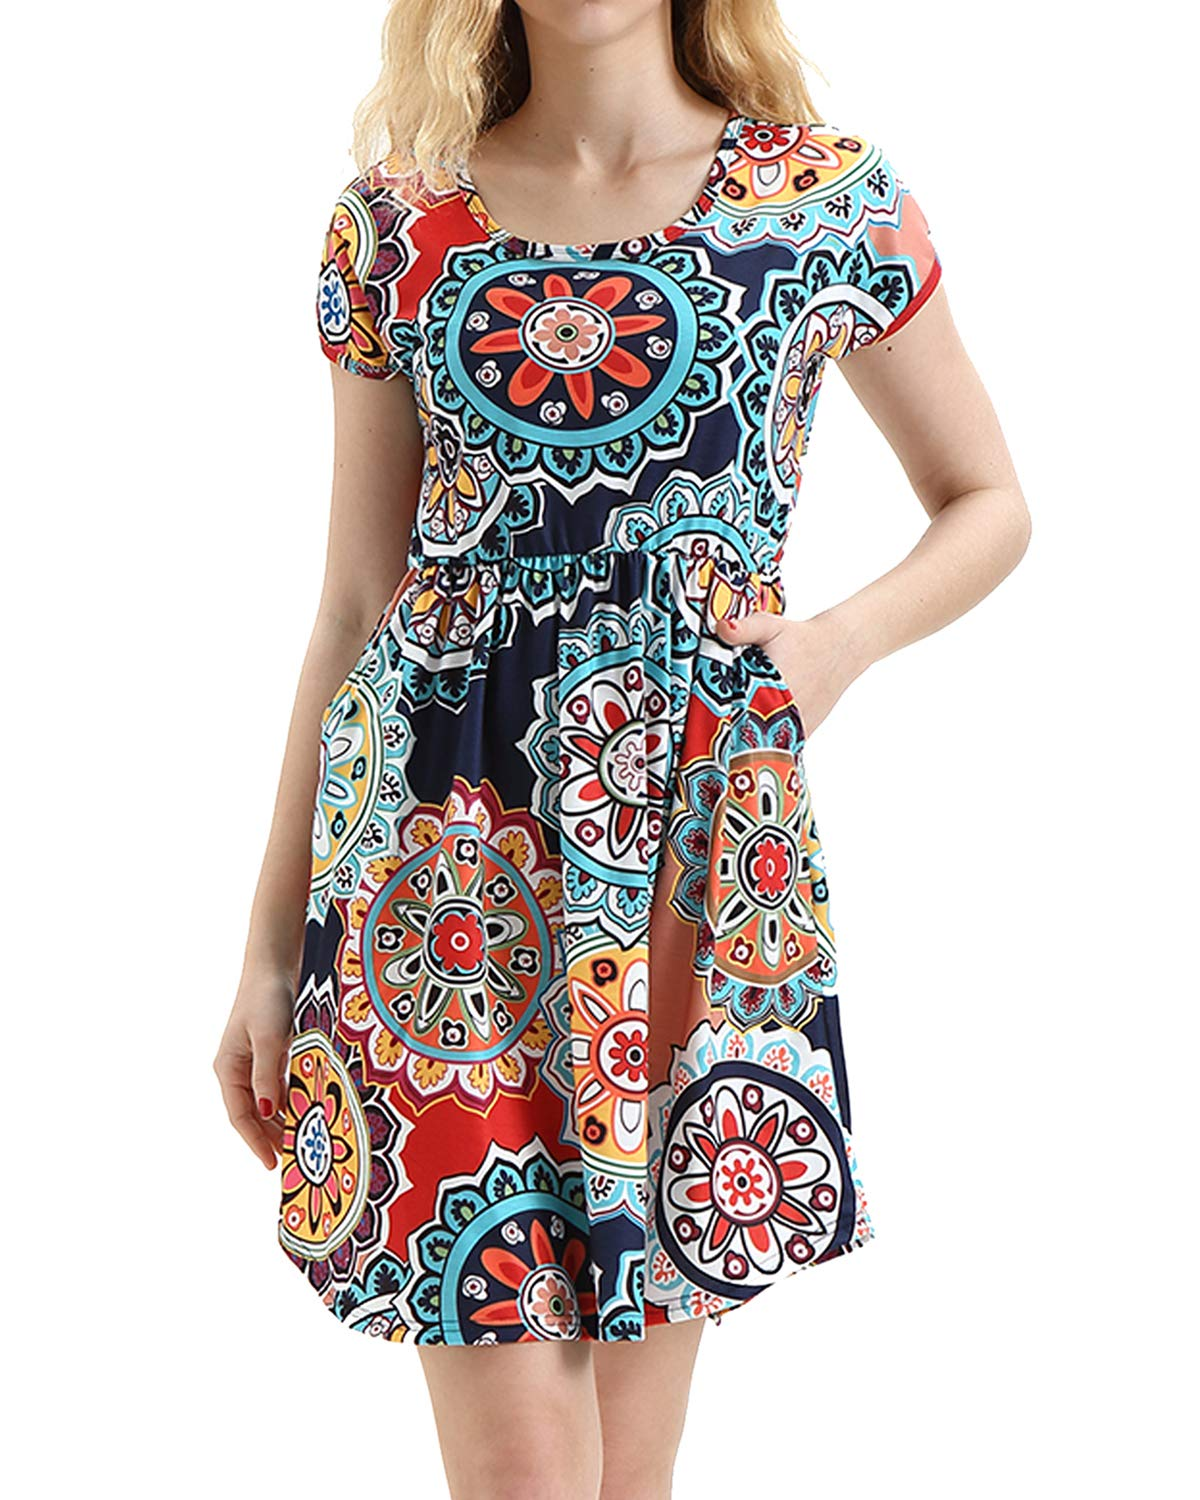 deesdail Patterned Dresses for Women, Ladies Scoop Neck Short Sleeve Midi Dress Floral Printed Long Tunic with Pockets Stretchy Shirts Navy Blue Flower M